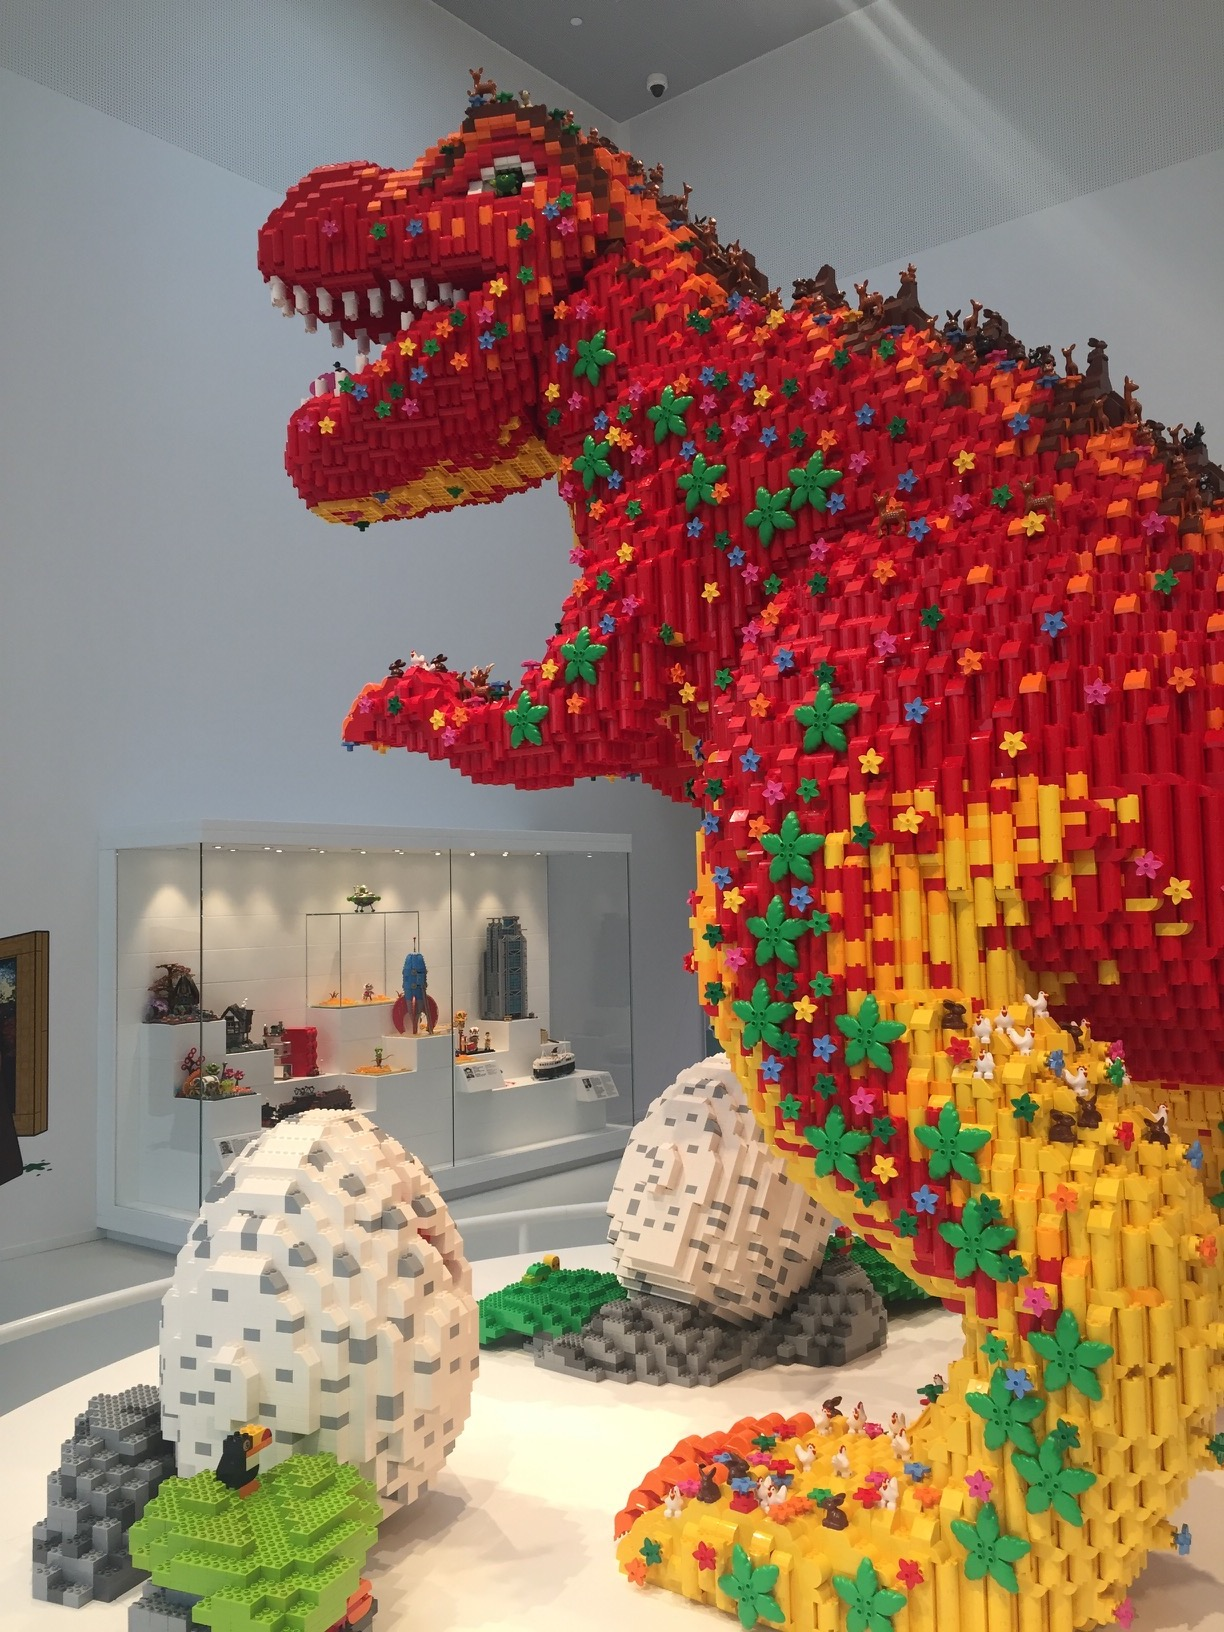 A more whimsical red-and-yellow LEGO dinosaur, with small leaves and animals riding along.